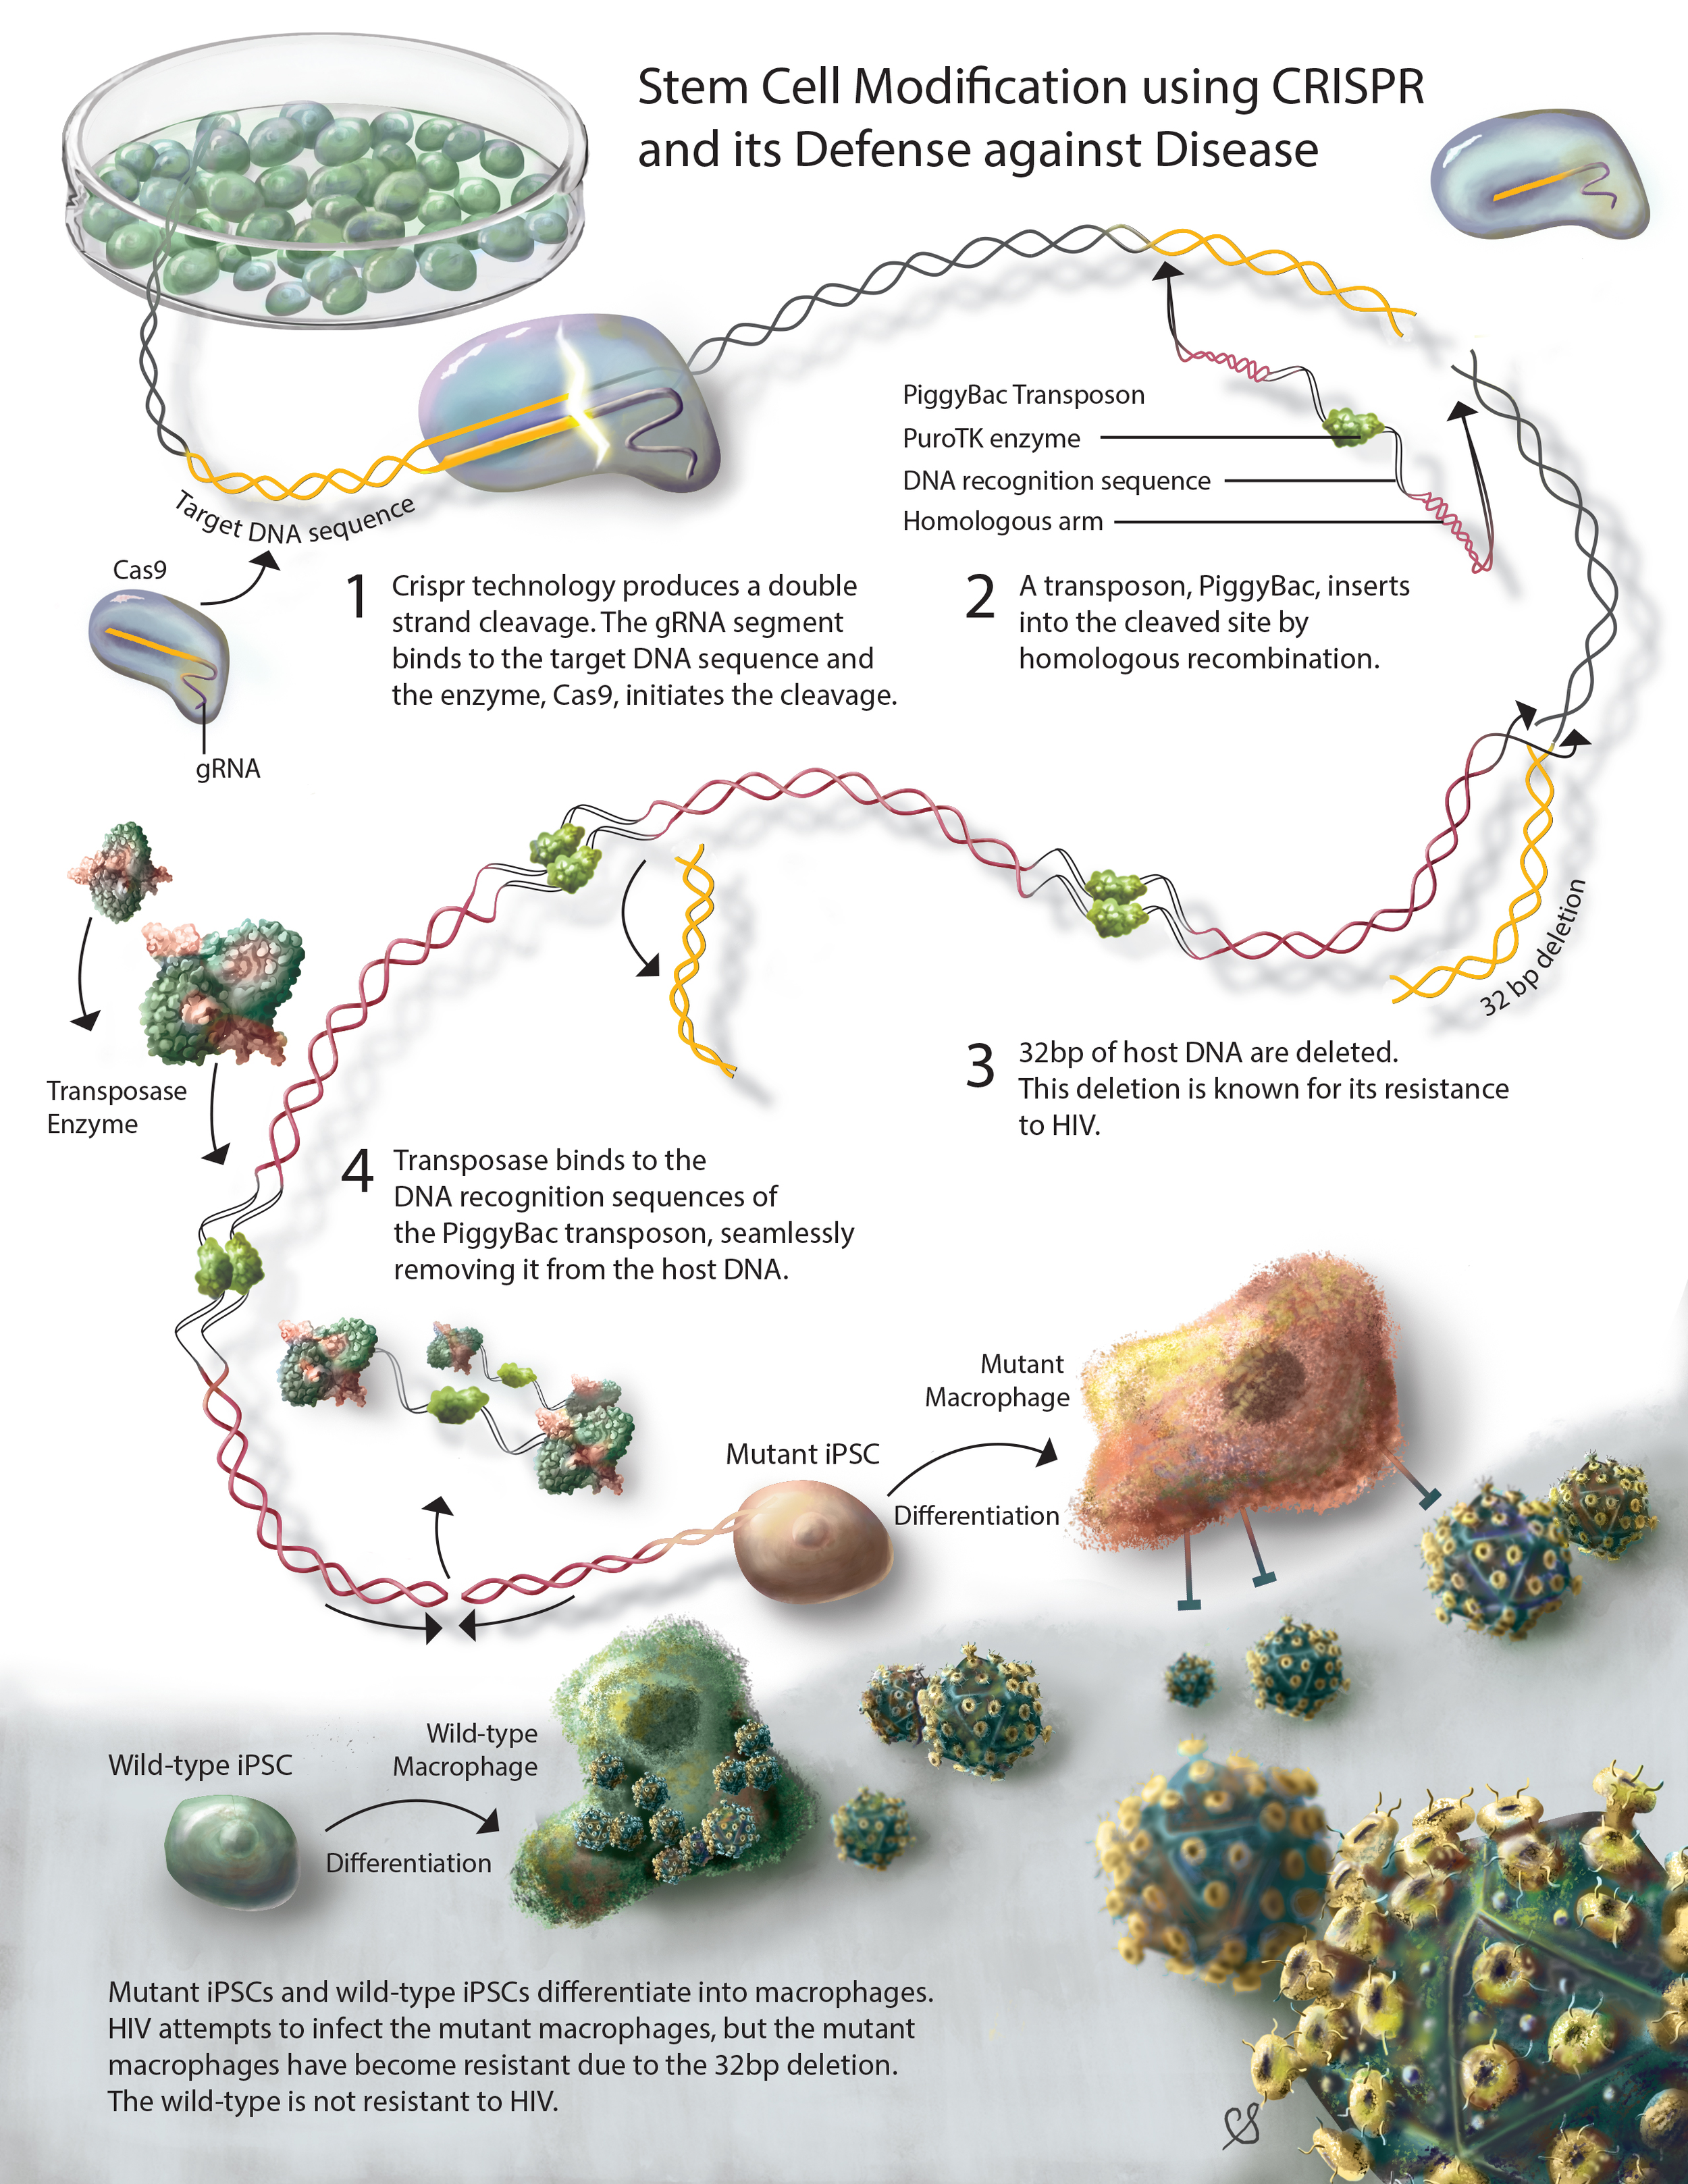 Image of Stem cell modification using CRISPR and its defense against disease